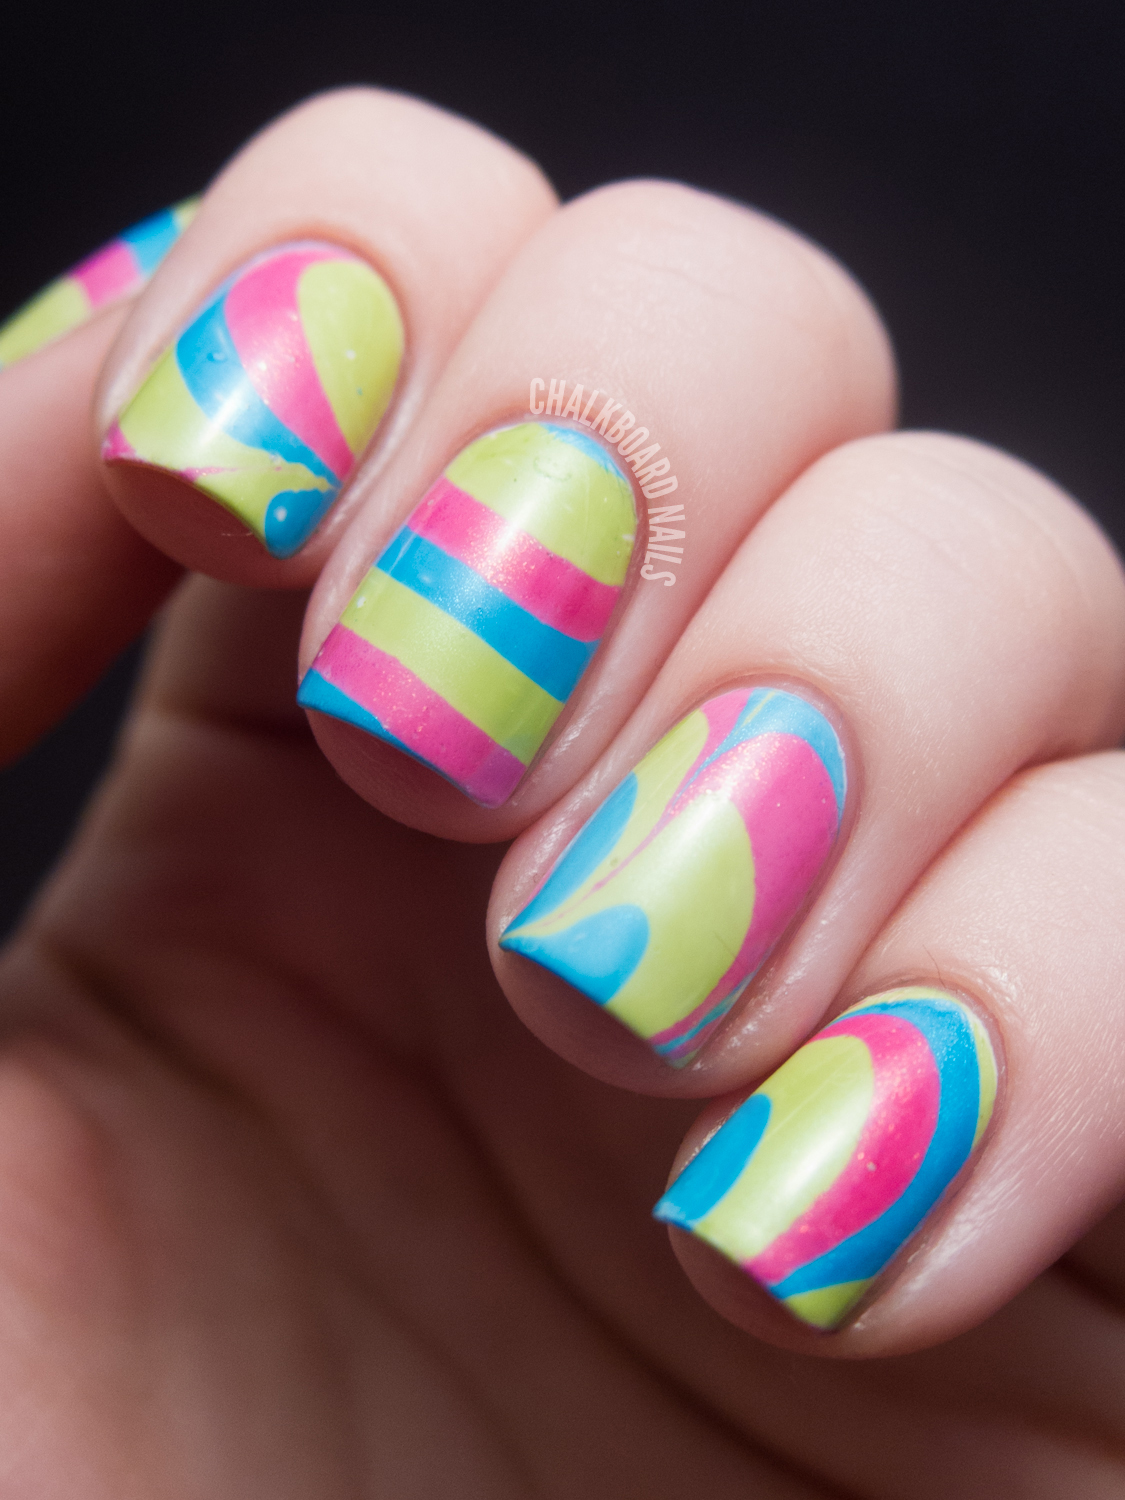 31DC2012: Day 20, Water Marble | Chalkboard Nails | Nail Art Blog